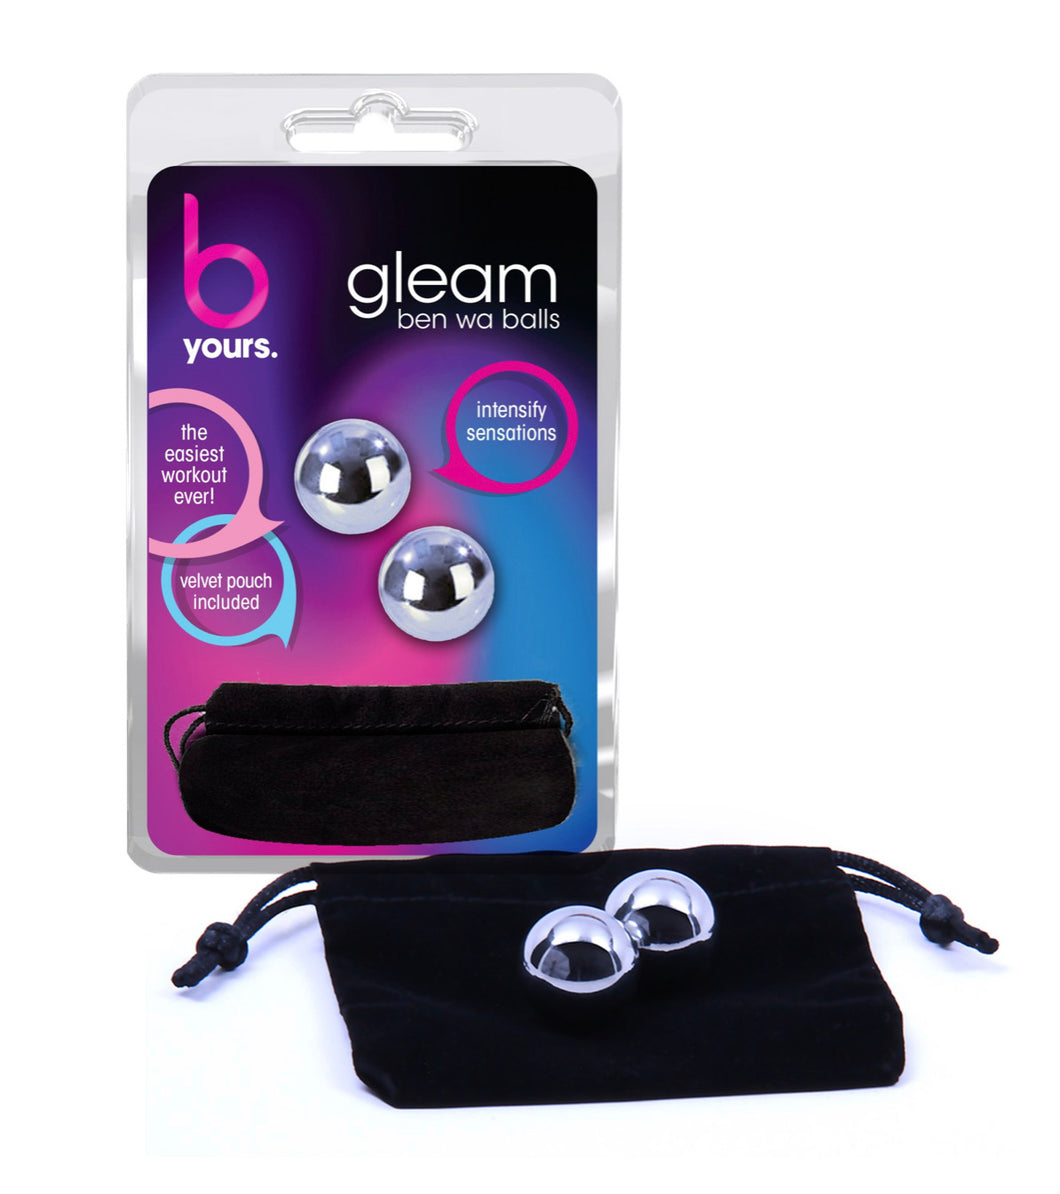 B Yours – Gleam Stainless Steel Kegel Balls